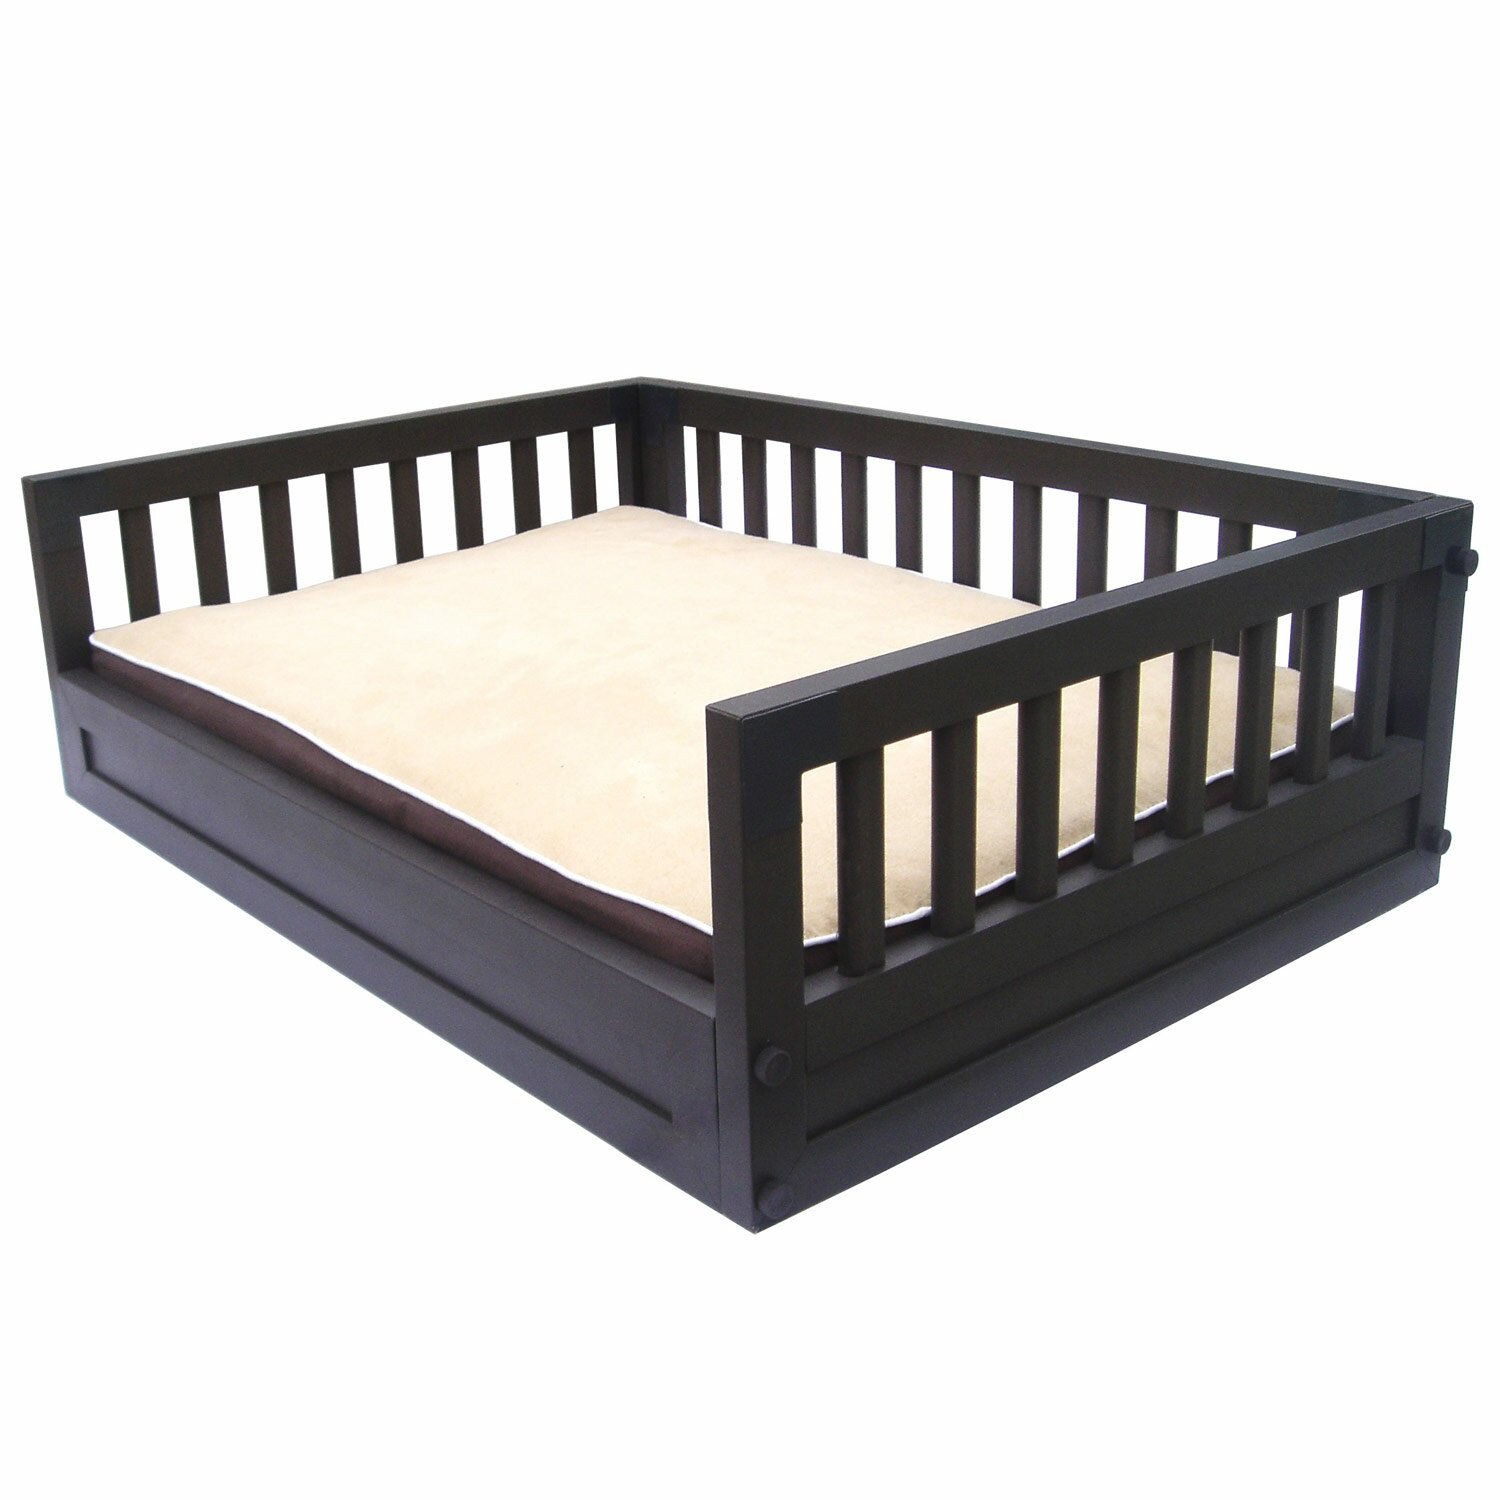 New age pet habitat 39 n home my buddy 39 s bunk pet bed for New bed pics